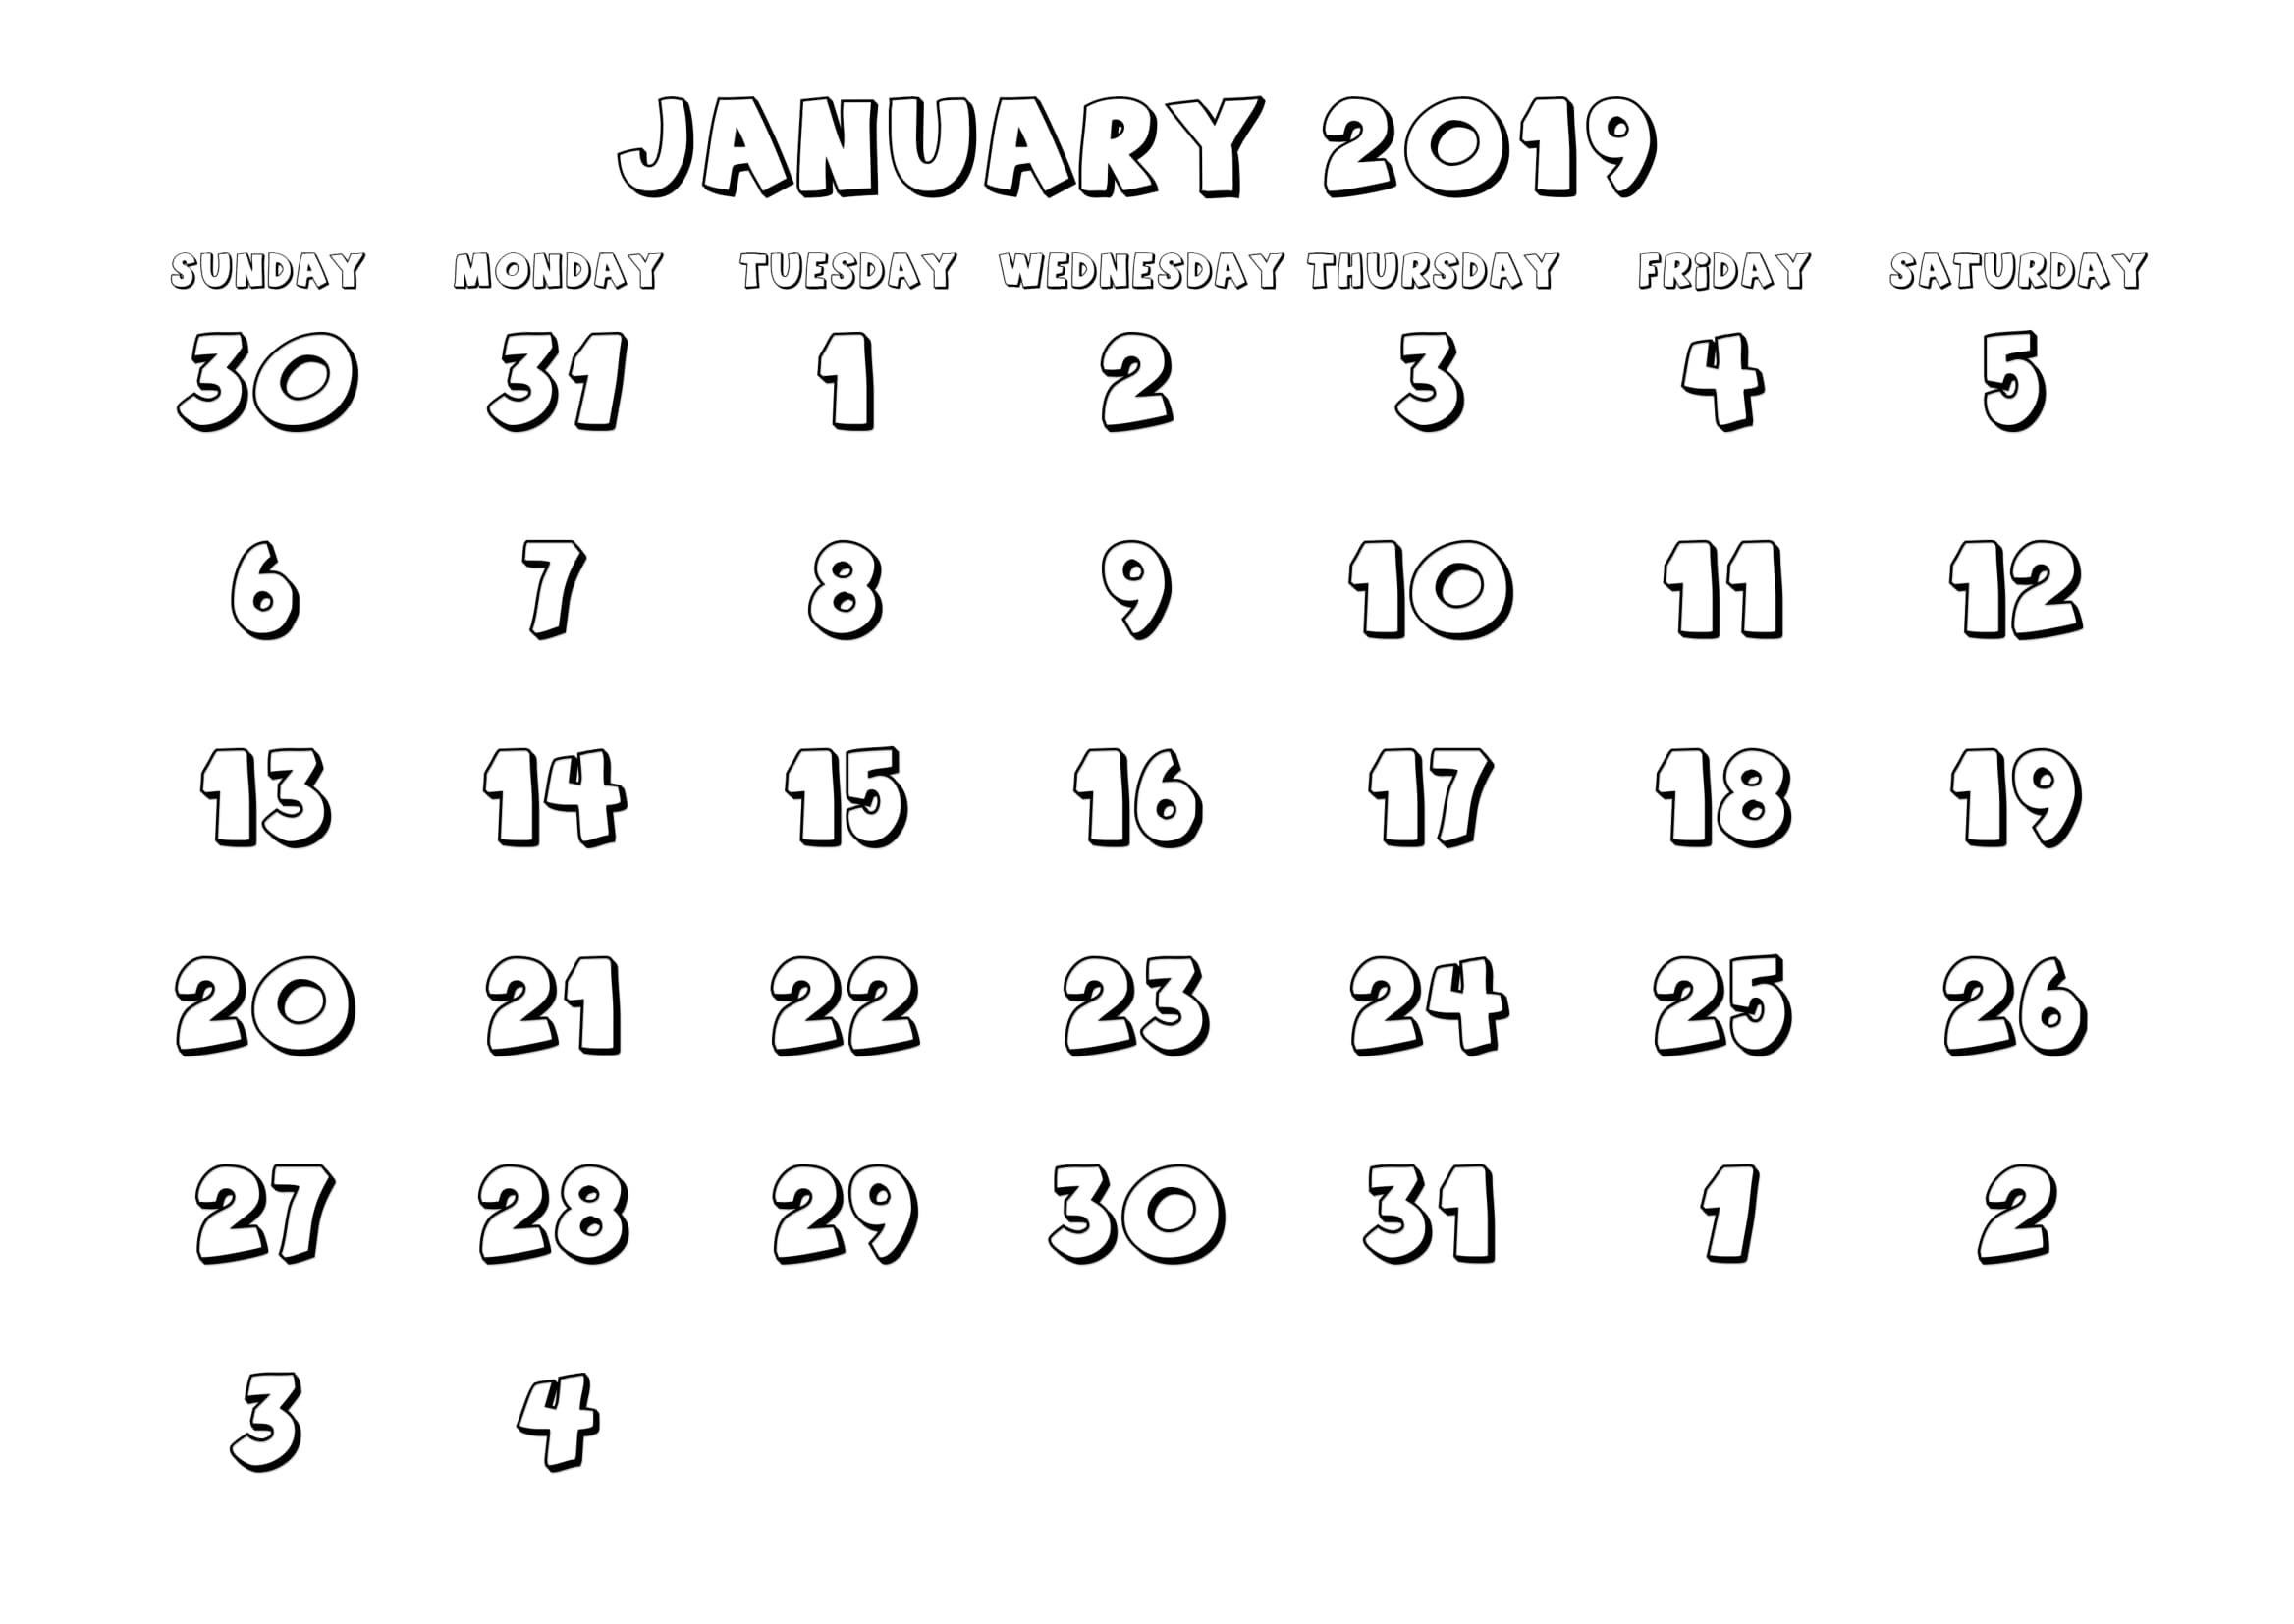 January 2019 Calendar Template UK